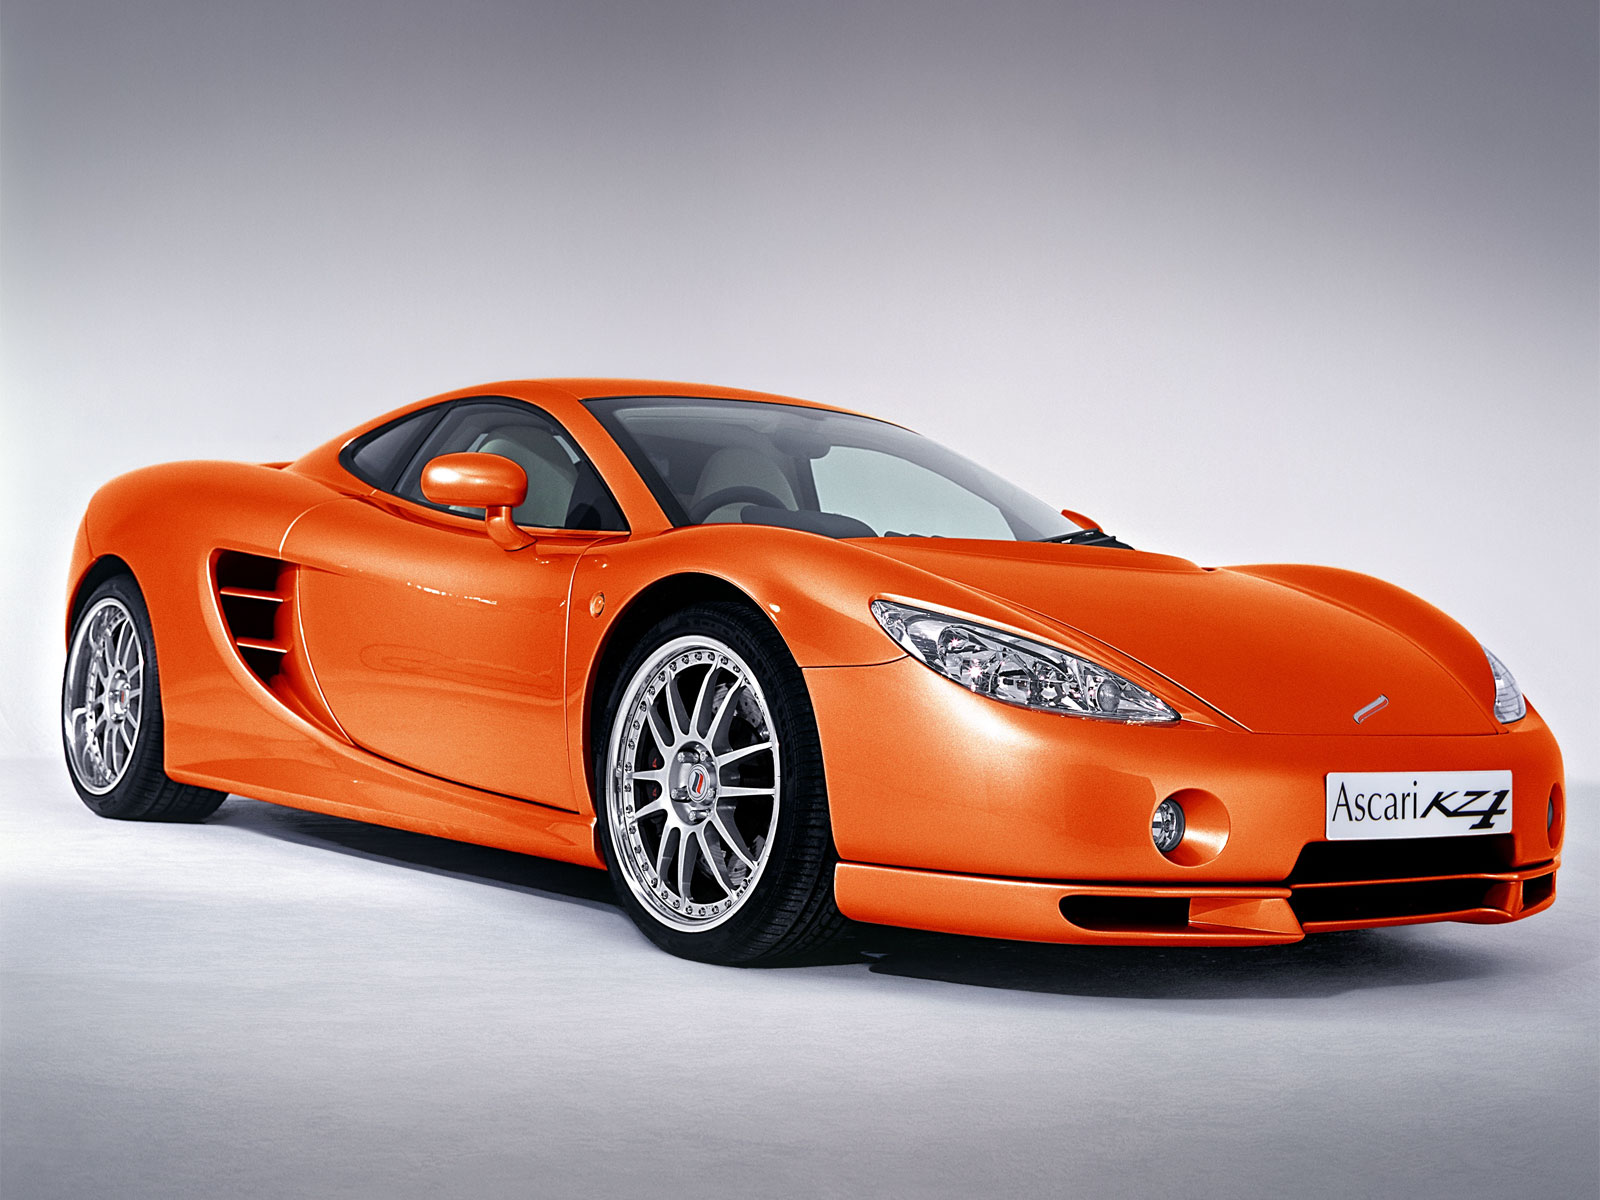 Ascari Pictures Wallpapers Pics Photos &amp Quality Images